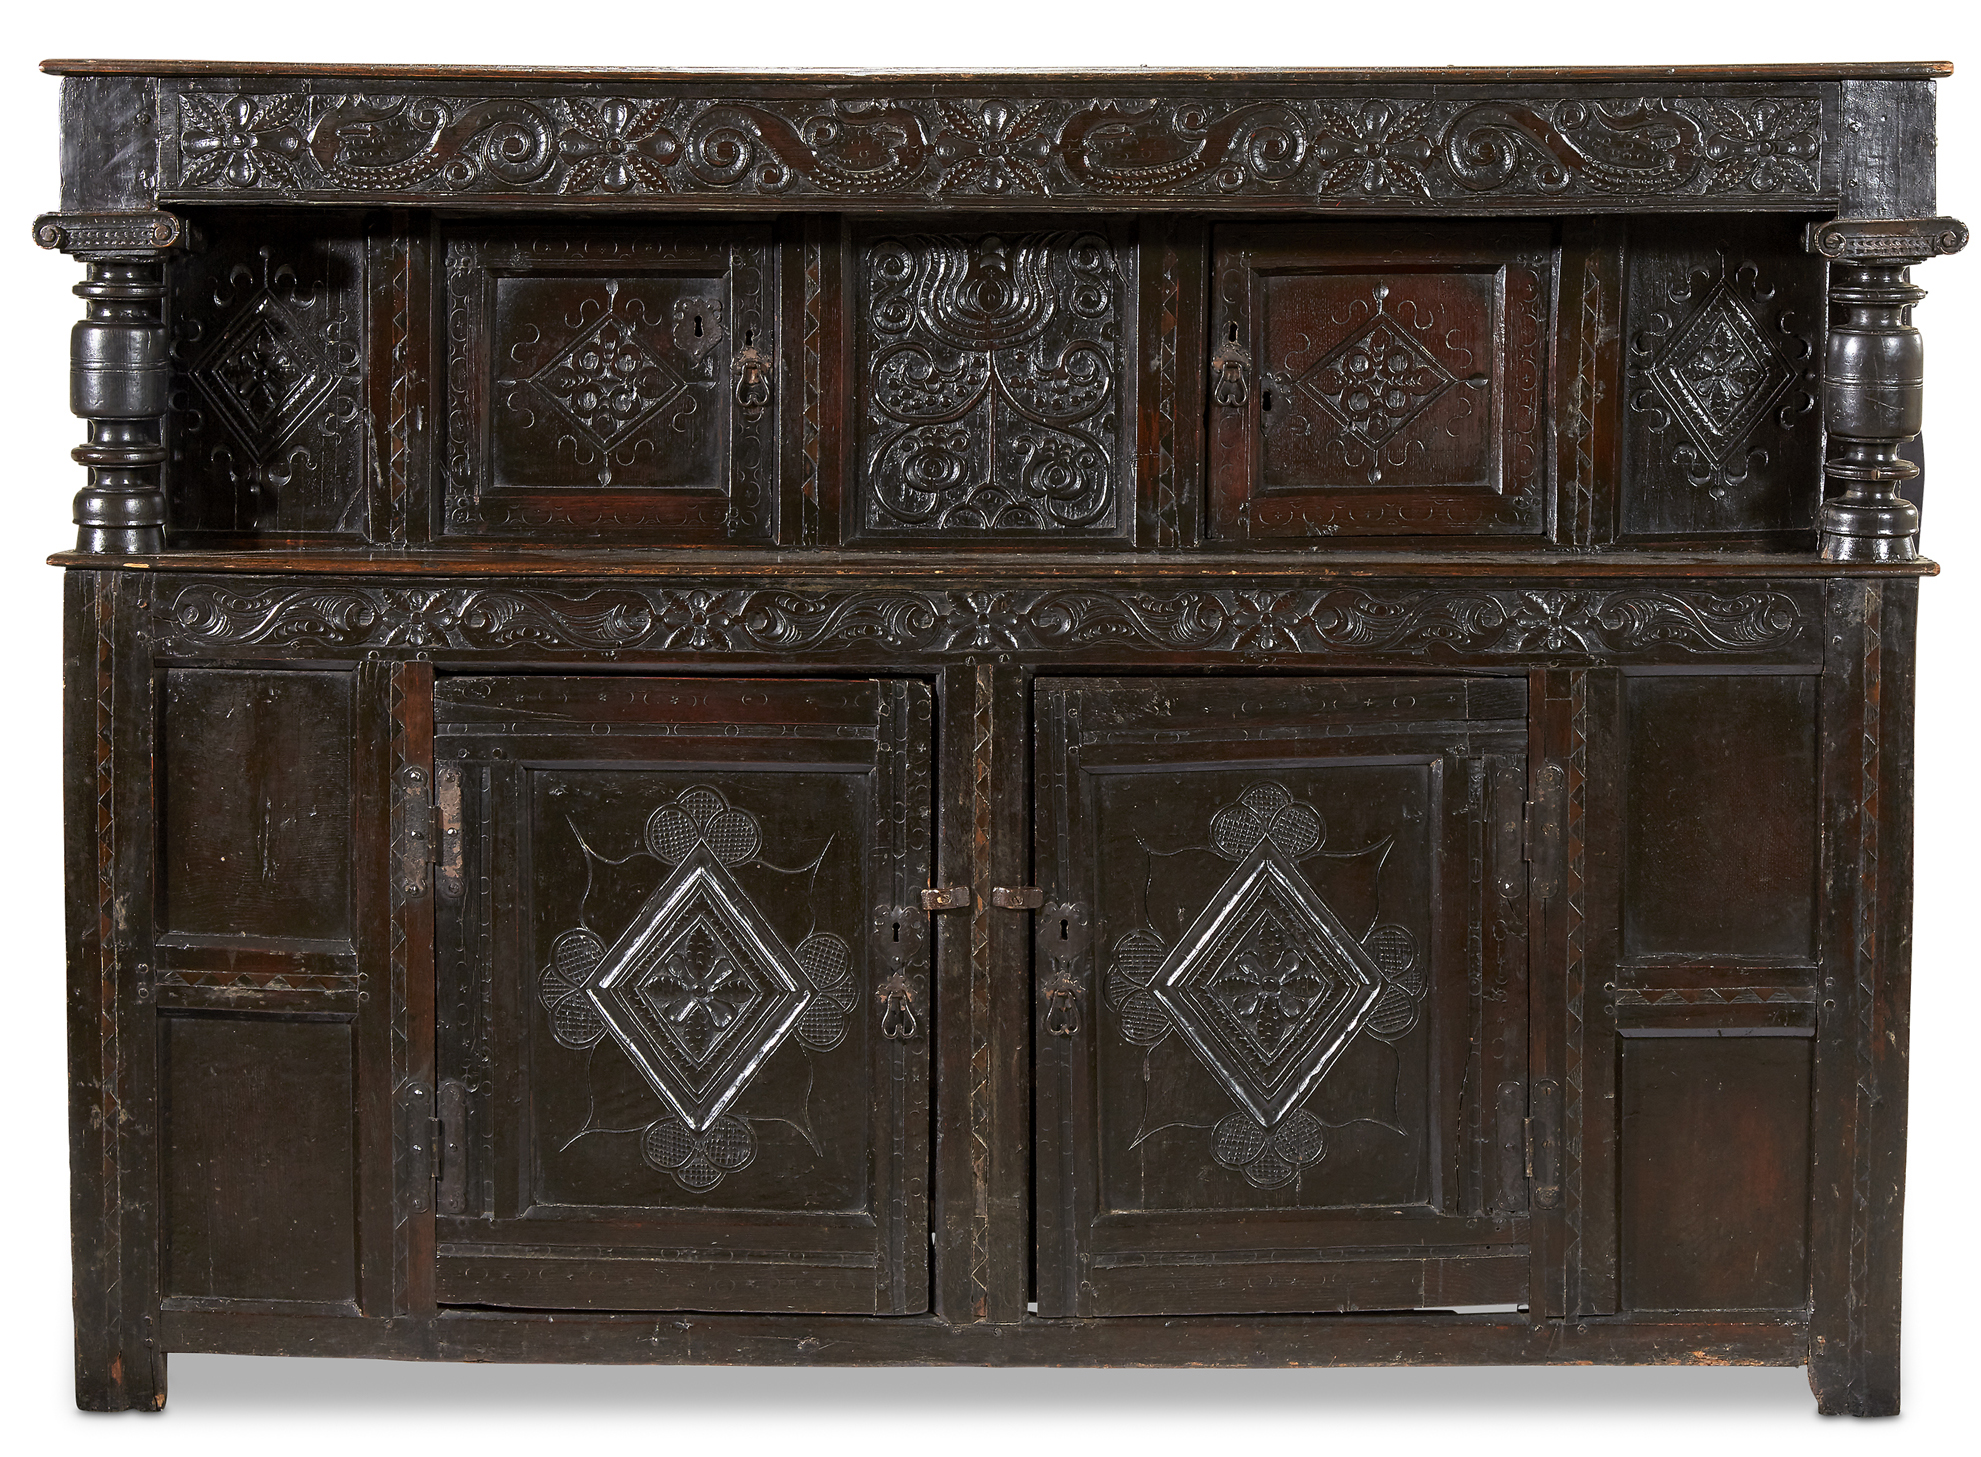 Lot 31: A Large and Fine Elizabethan/James I Carved Oak Court Cupboard, Early 17th Century, $6,000-8,000, to be offered at Freeman's on 10 April 2019